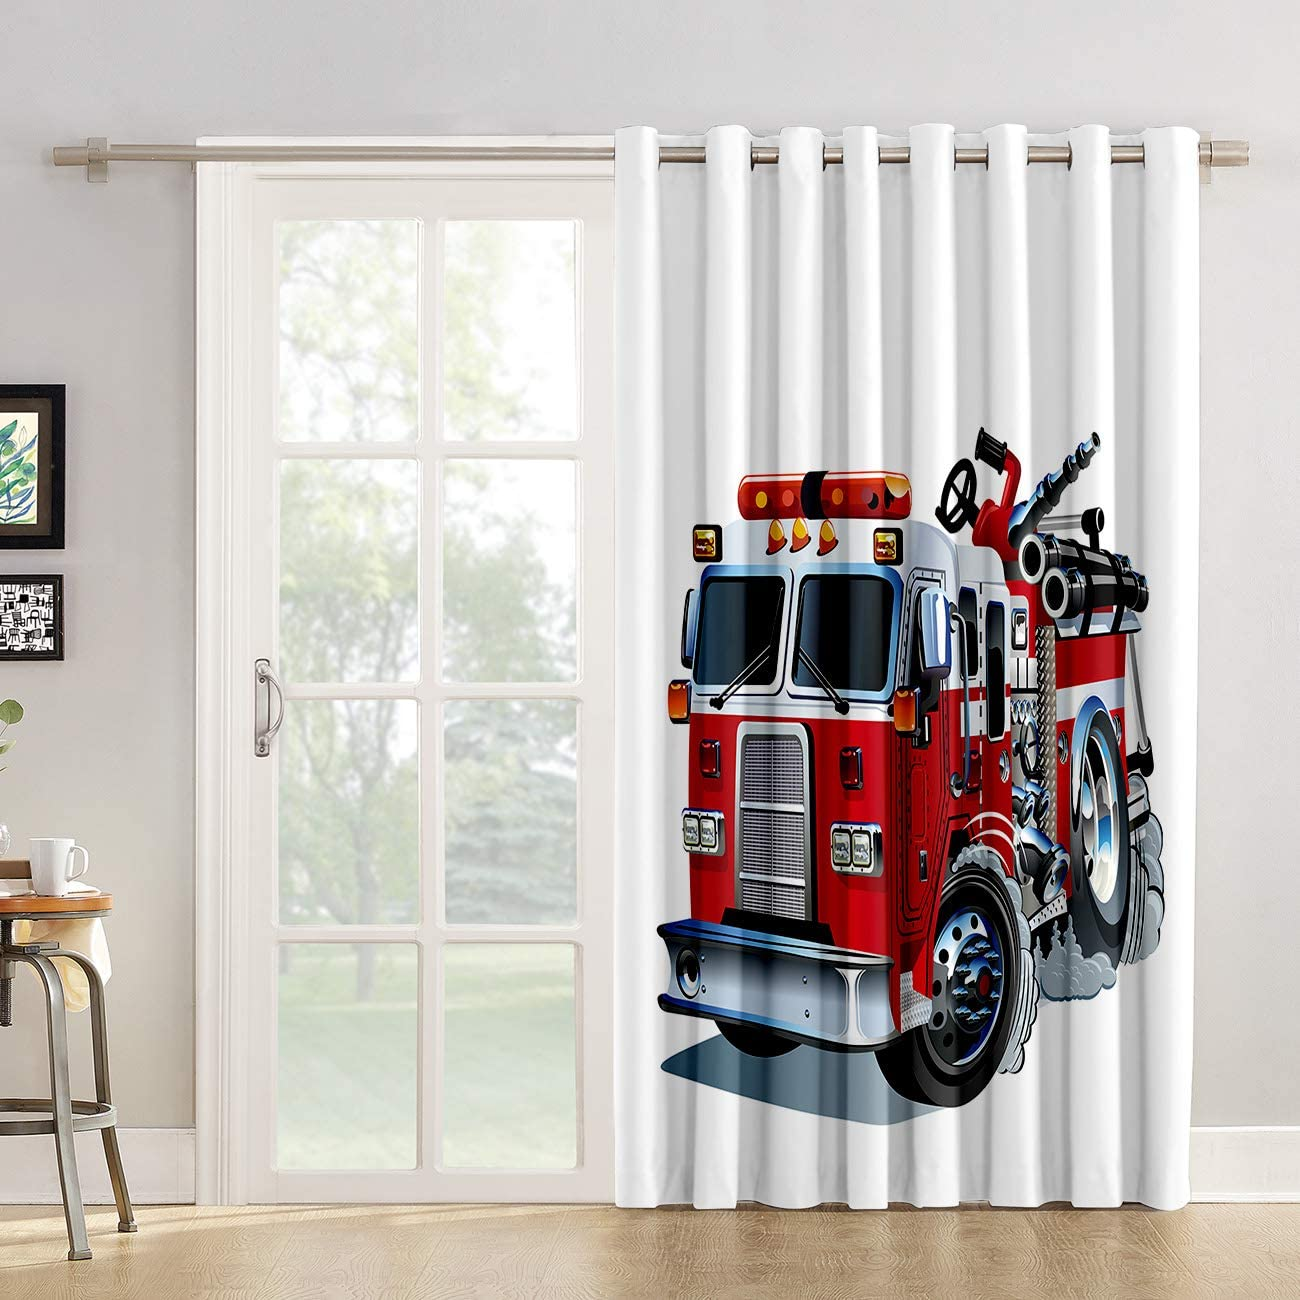 Red Vow Window Treatment Curtain 63 Inch Length - Chic Window Drapes Panel for Living Room Bedroom - Fire Truck Model Lover Patterned Polyester Fabric Draperies